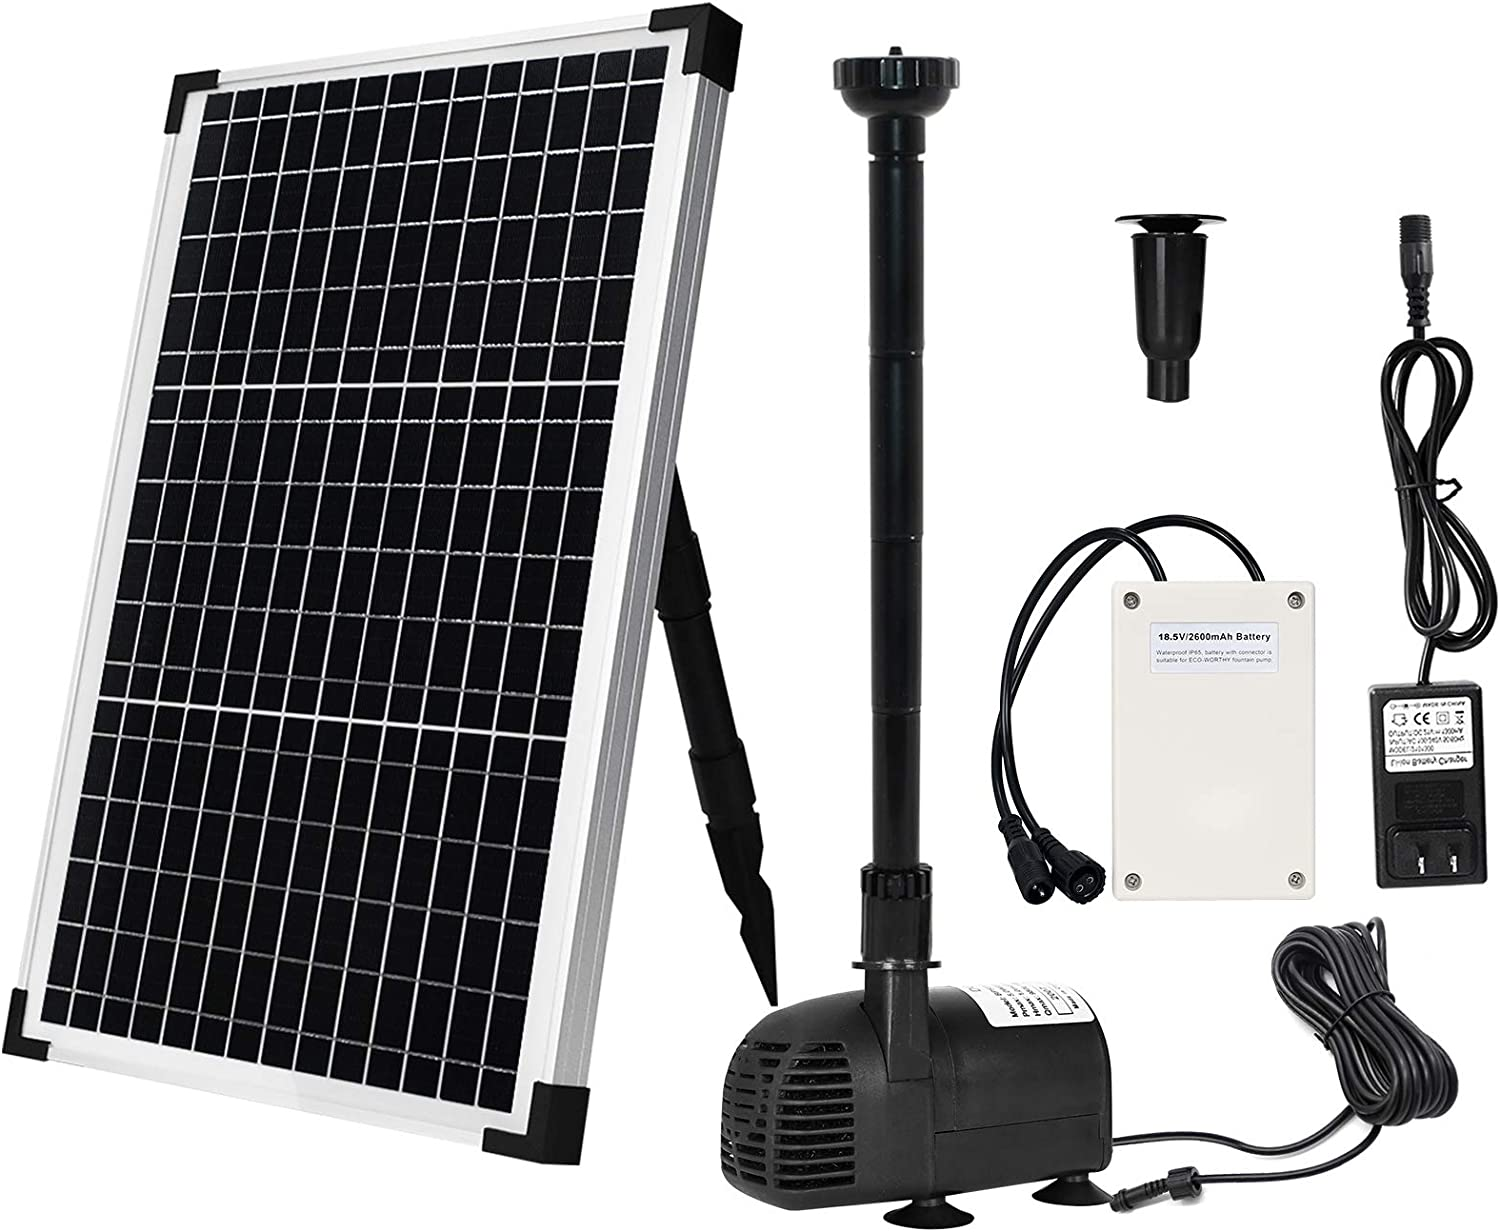 Solar Fountain Water Pump Kit 30 W, Lift 8.5 FT Submersible Powered Pump and 30 Watt Solar Panel for Sun Powered Fountain, Pond Aeration, Hydroponics, Garden Decoration, Aquaculture(Battery Backup)